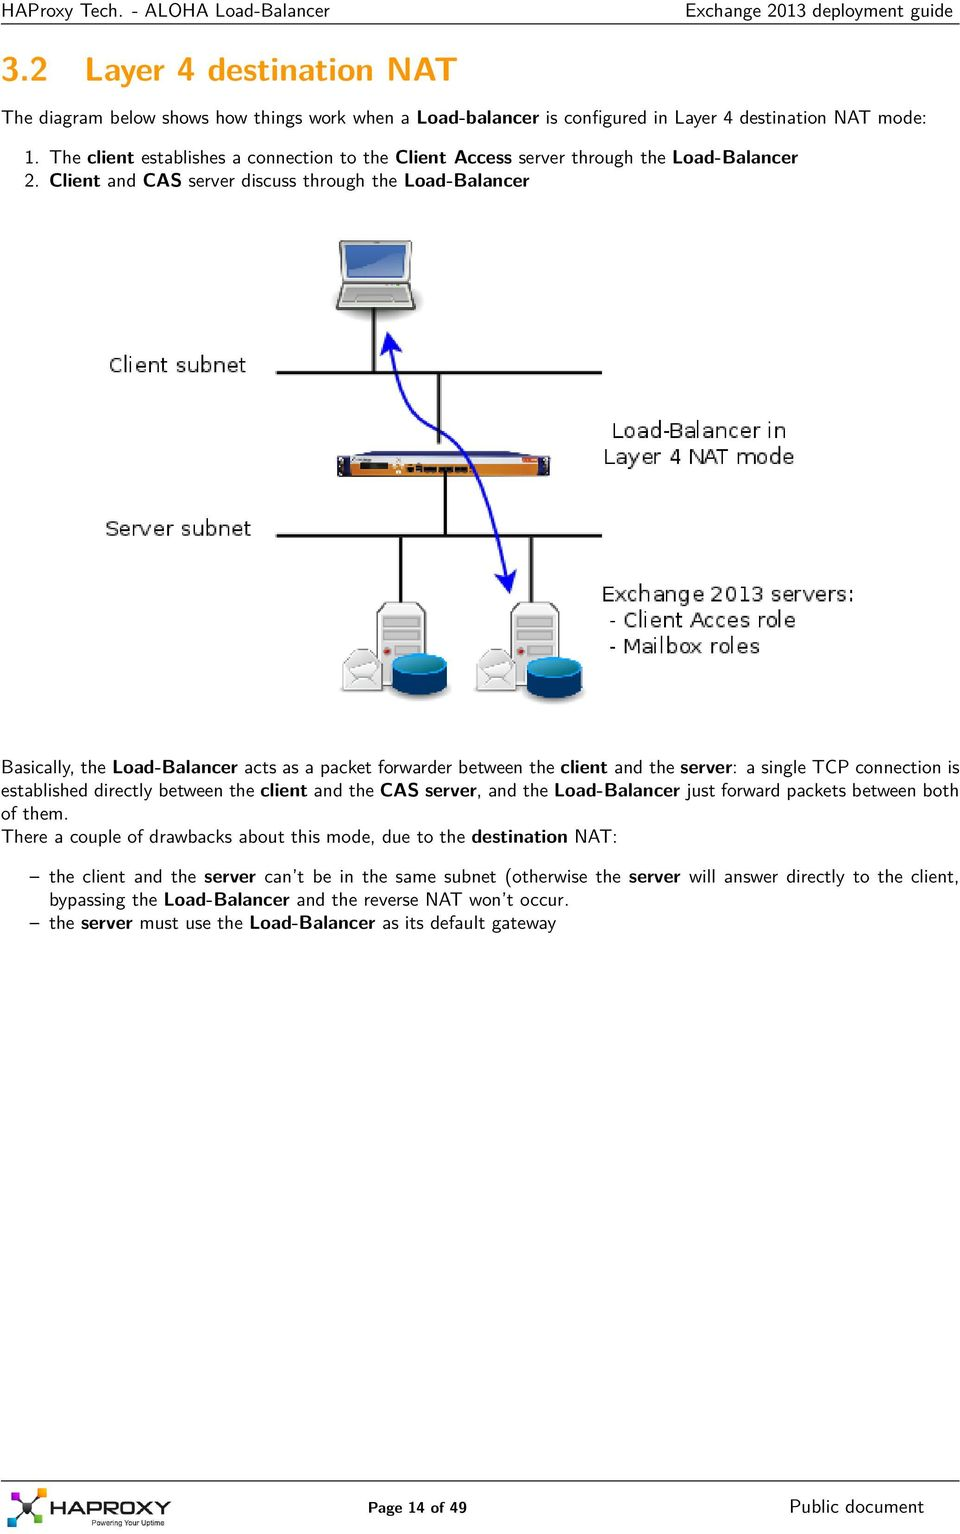 Client and CAS server discuss through the Load-Balancer Basically, the Load-Balancer acts as a packet forwarder between the client and the server: a single TCP connection is established directly